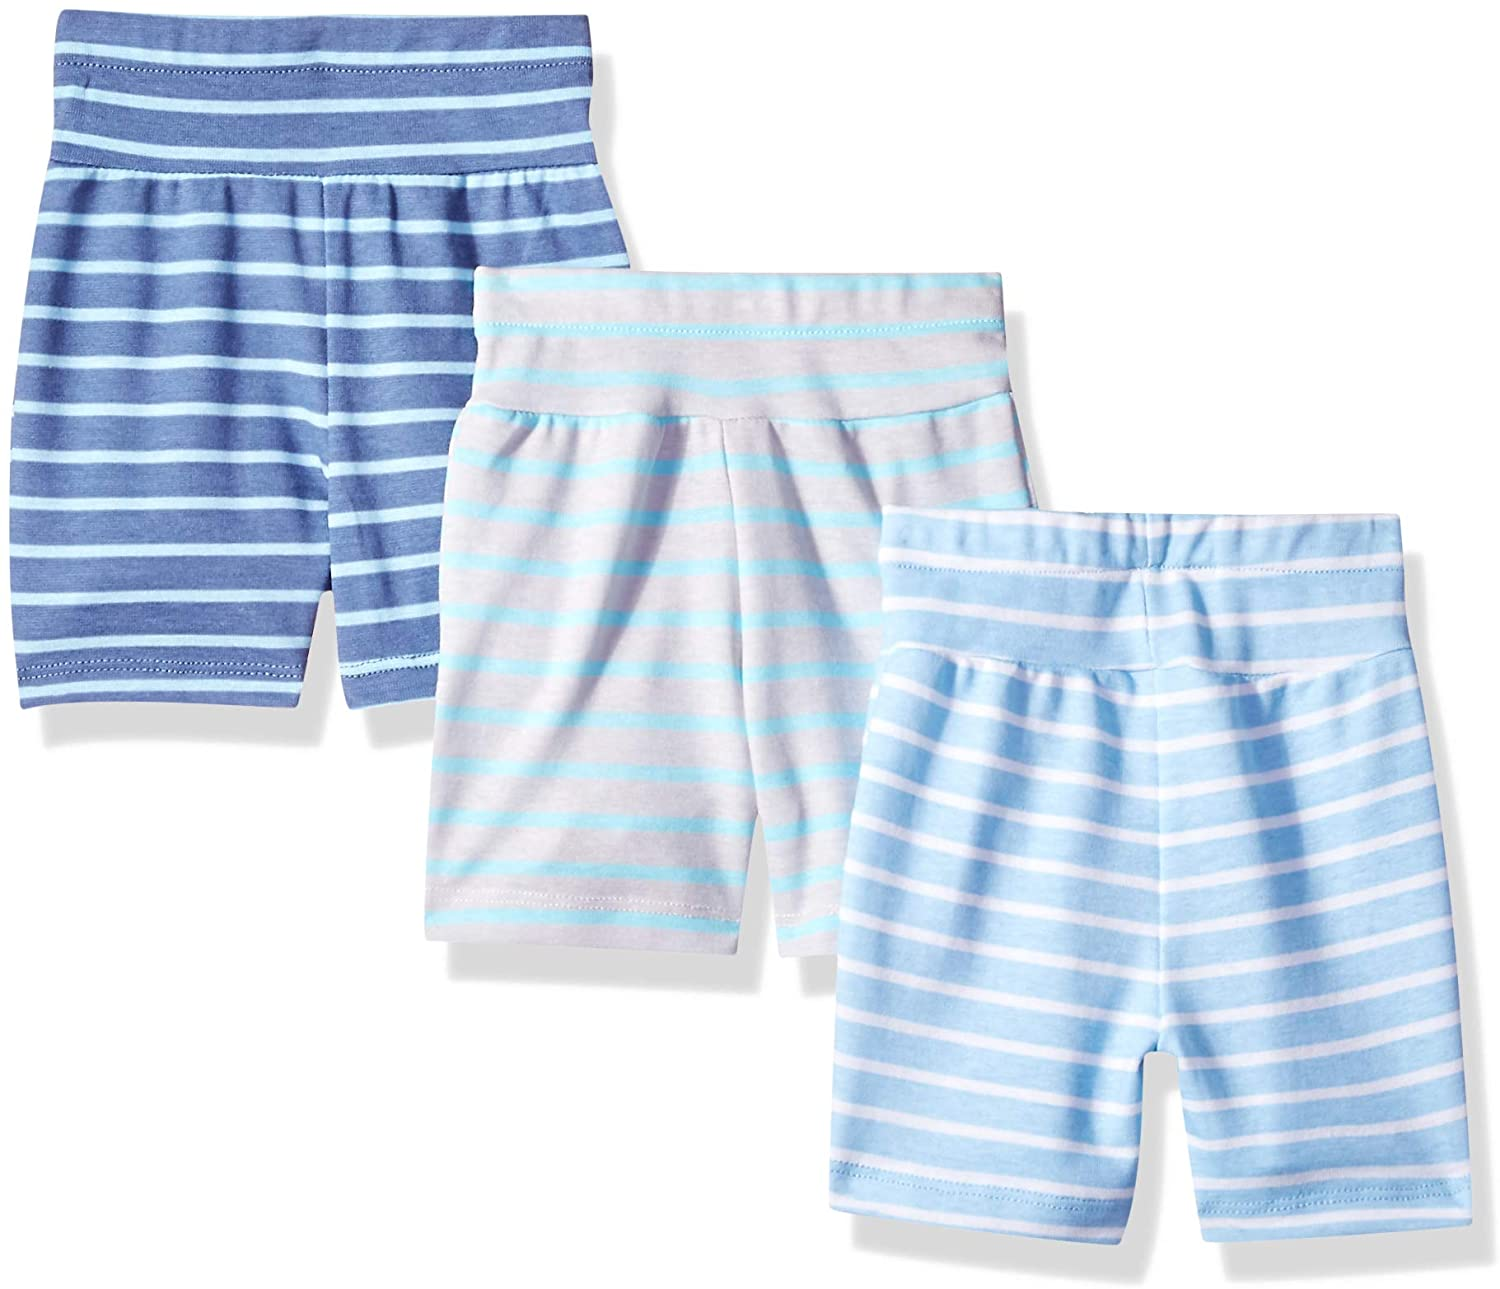 Hanes Ultimate Baby Flexy 3 Pack Adjustable Fit Knit Shorts: Clothing, Shoes & Jewelry